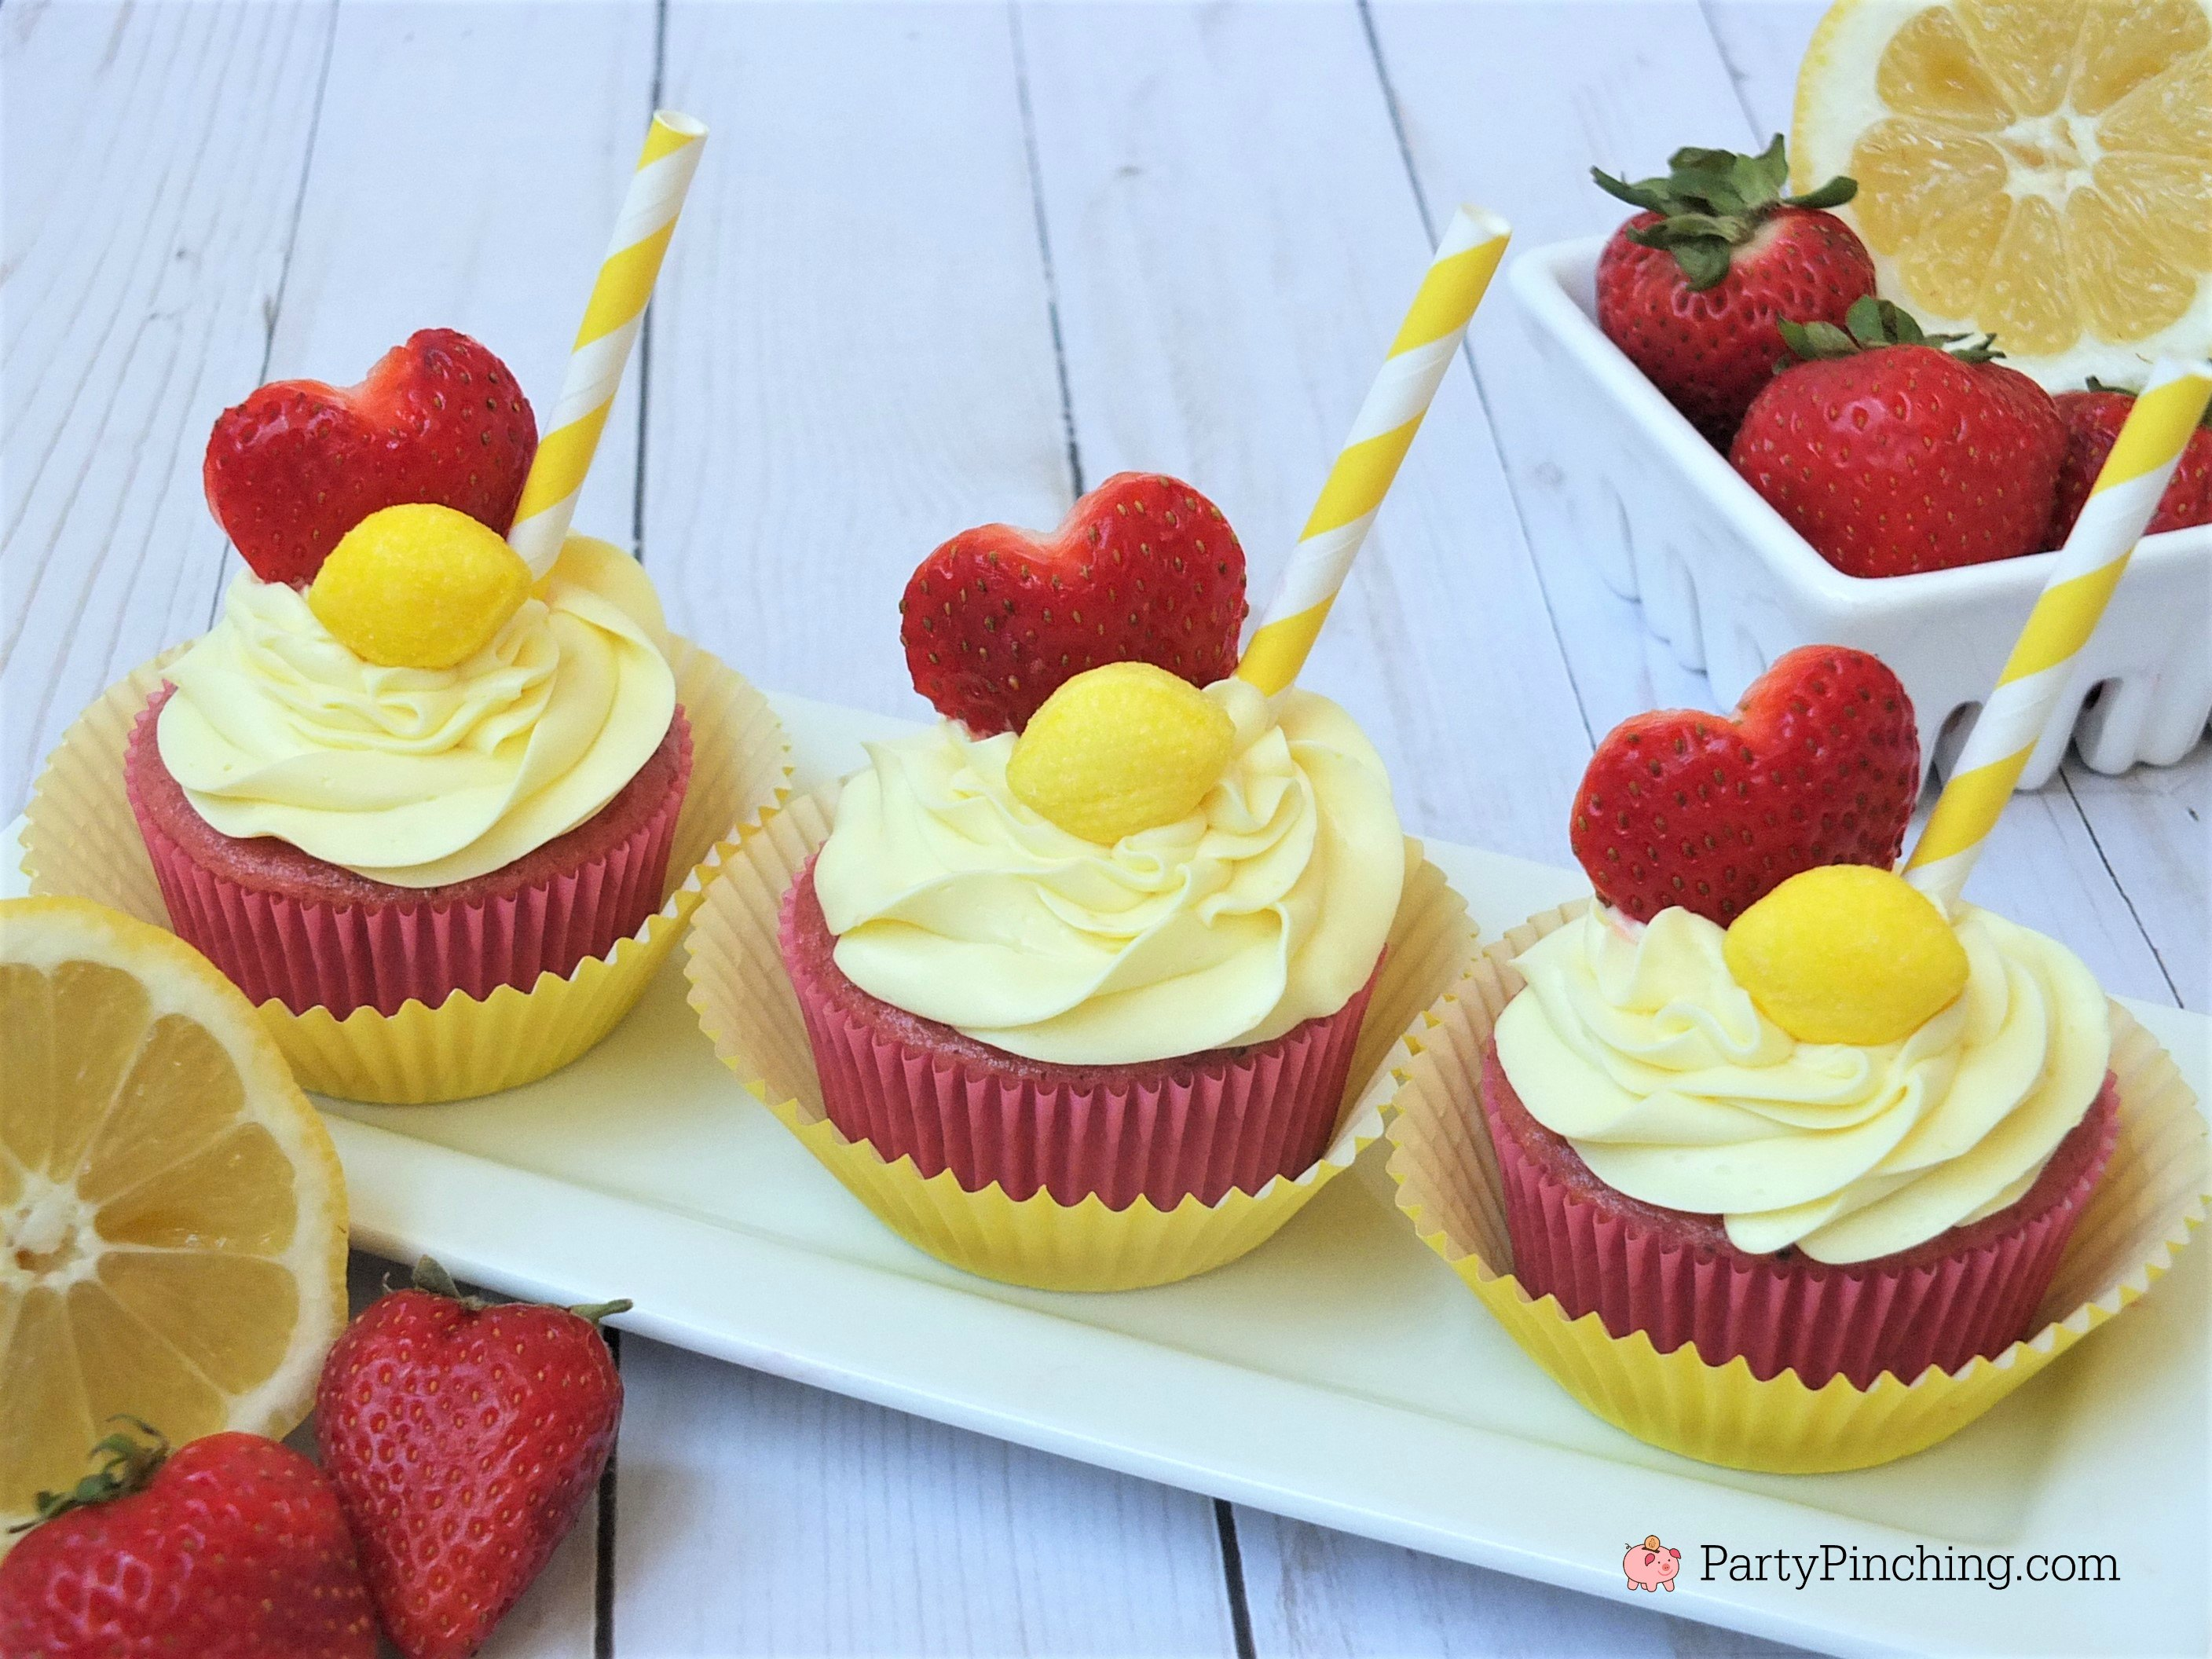 strawberry lemonade cupcakes, box mix fresh fruit cupcakes, refreshing summer cupcakes, cute cupcakes for kids, fun and easy cupcakes, strawberry cupcakes with frozen puree, lemon can frosting with zest and juice, easy cupcake recipe